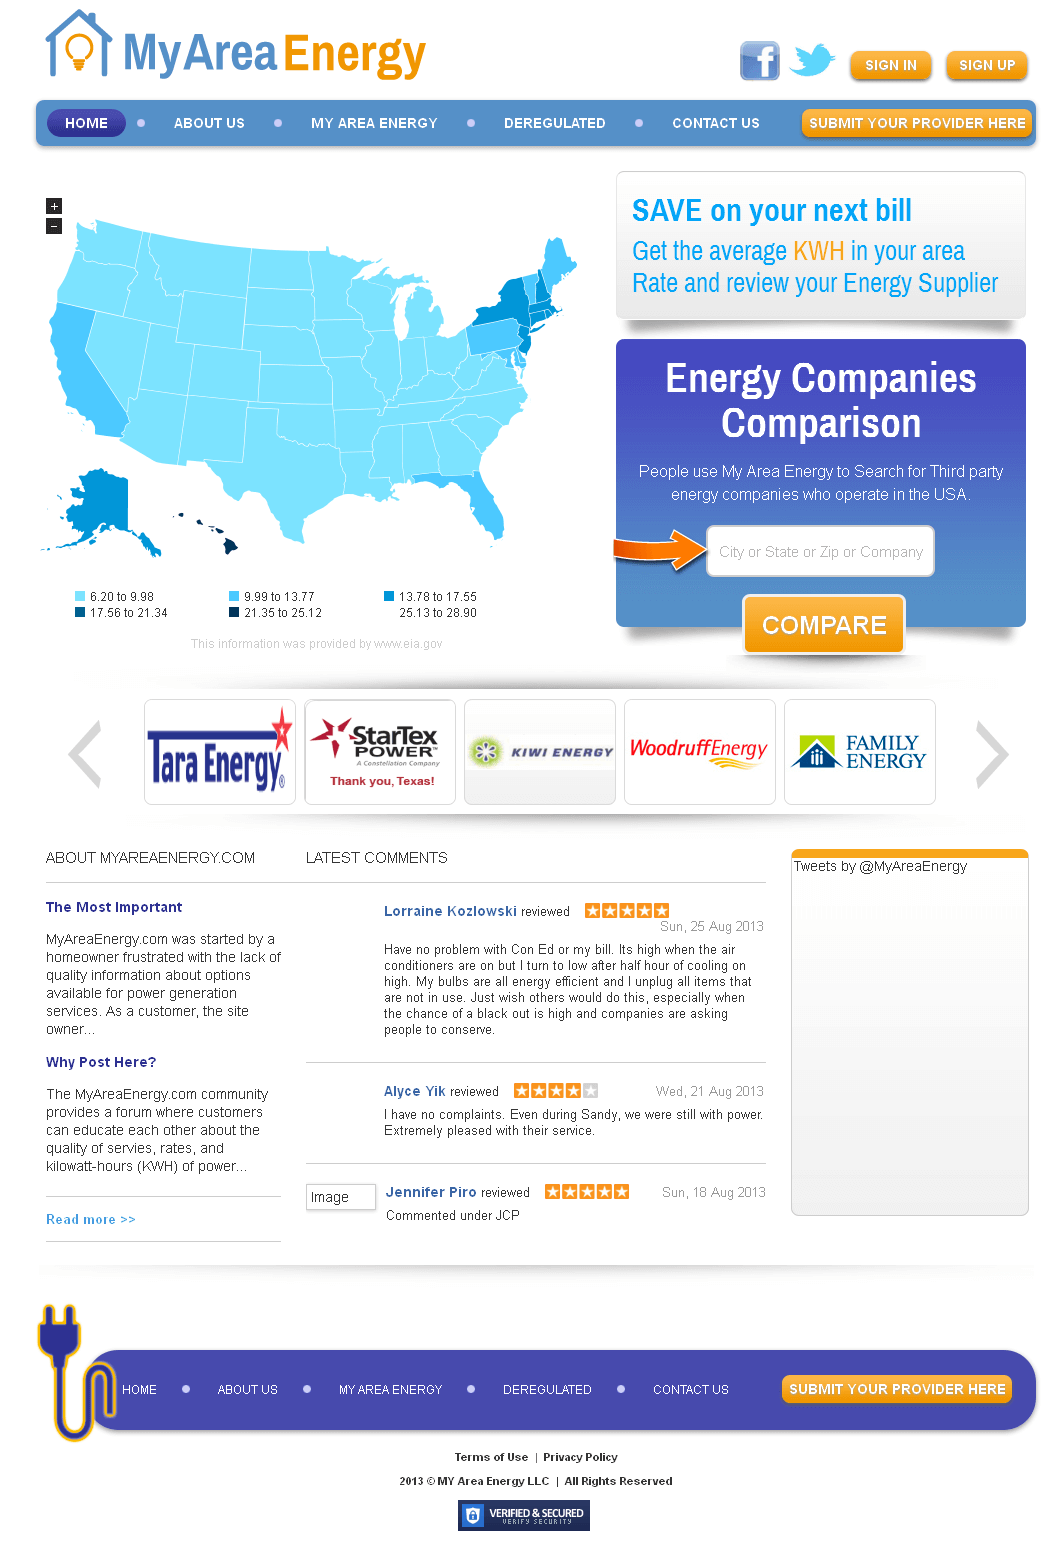 Website for Power industry 'My Area Energy' Using PHP - Energy Supplier